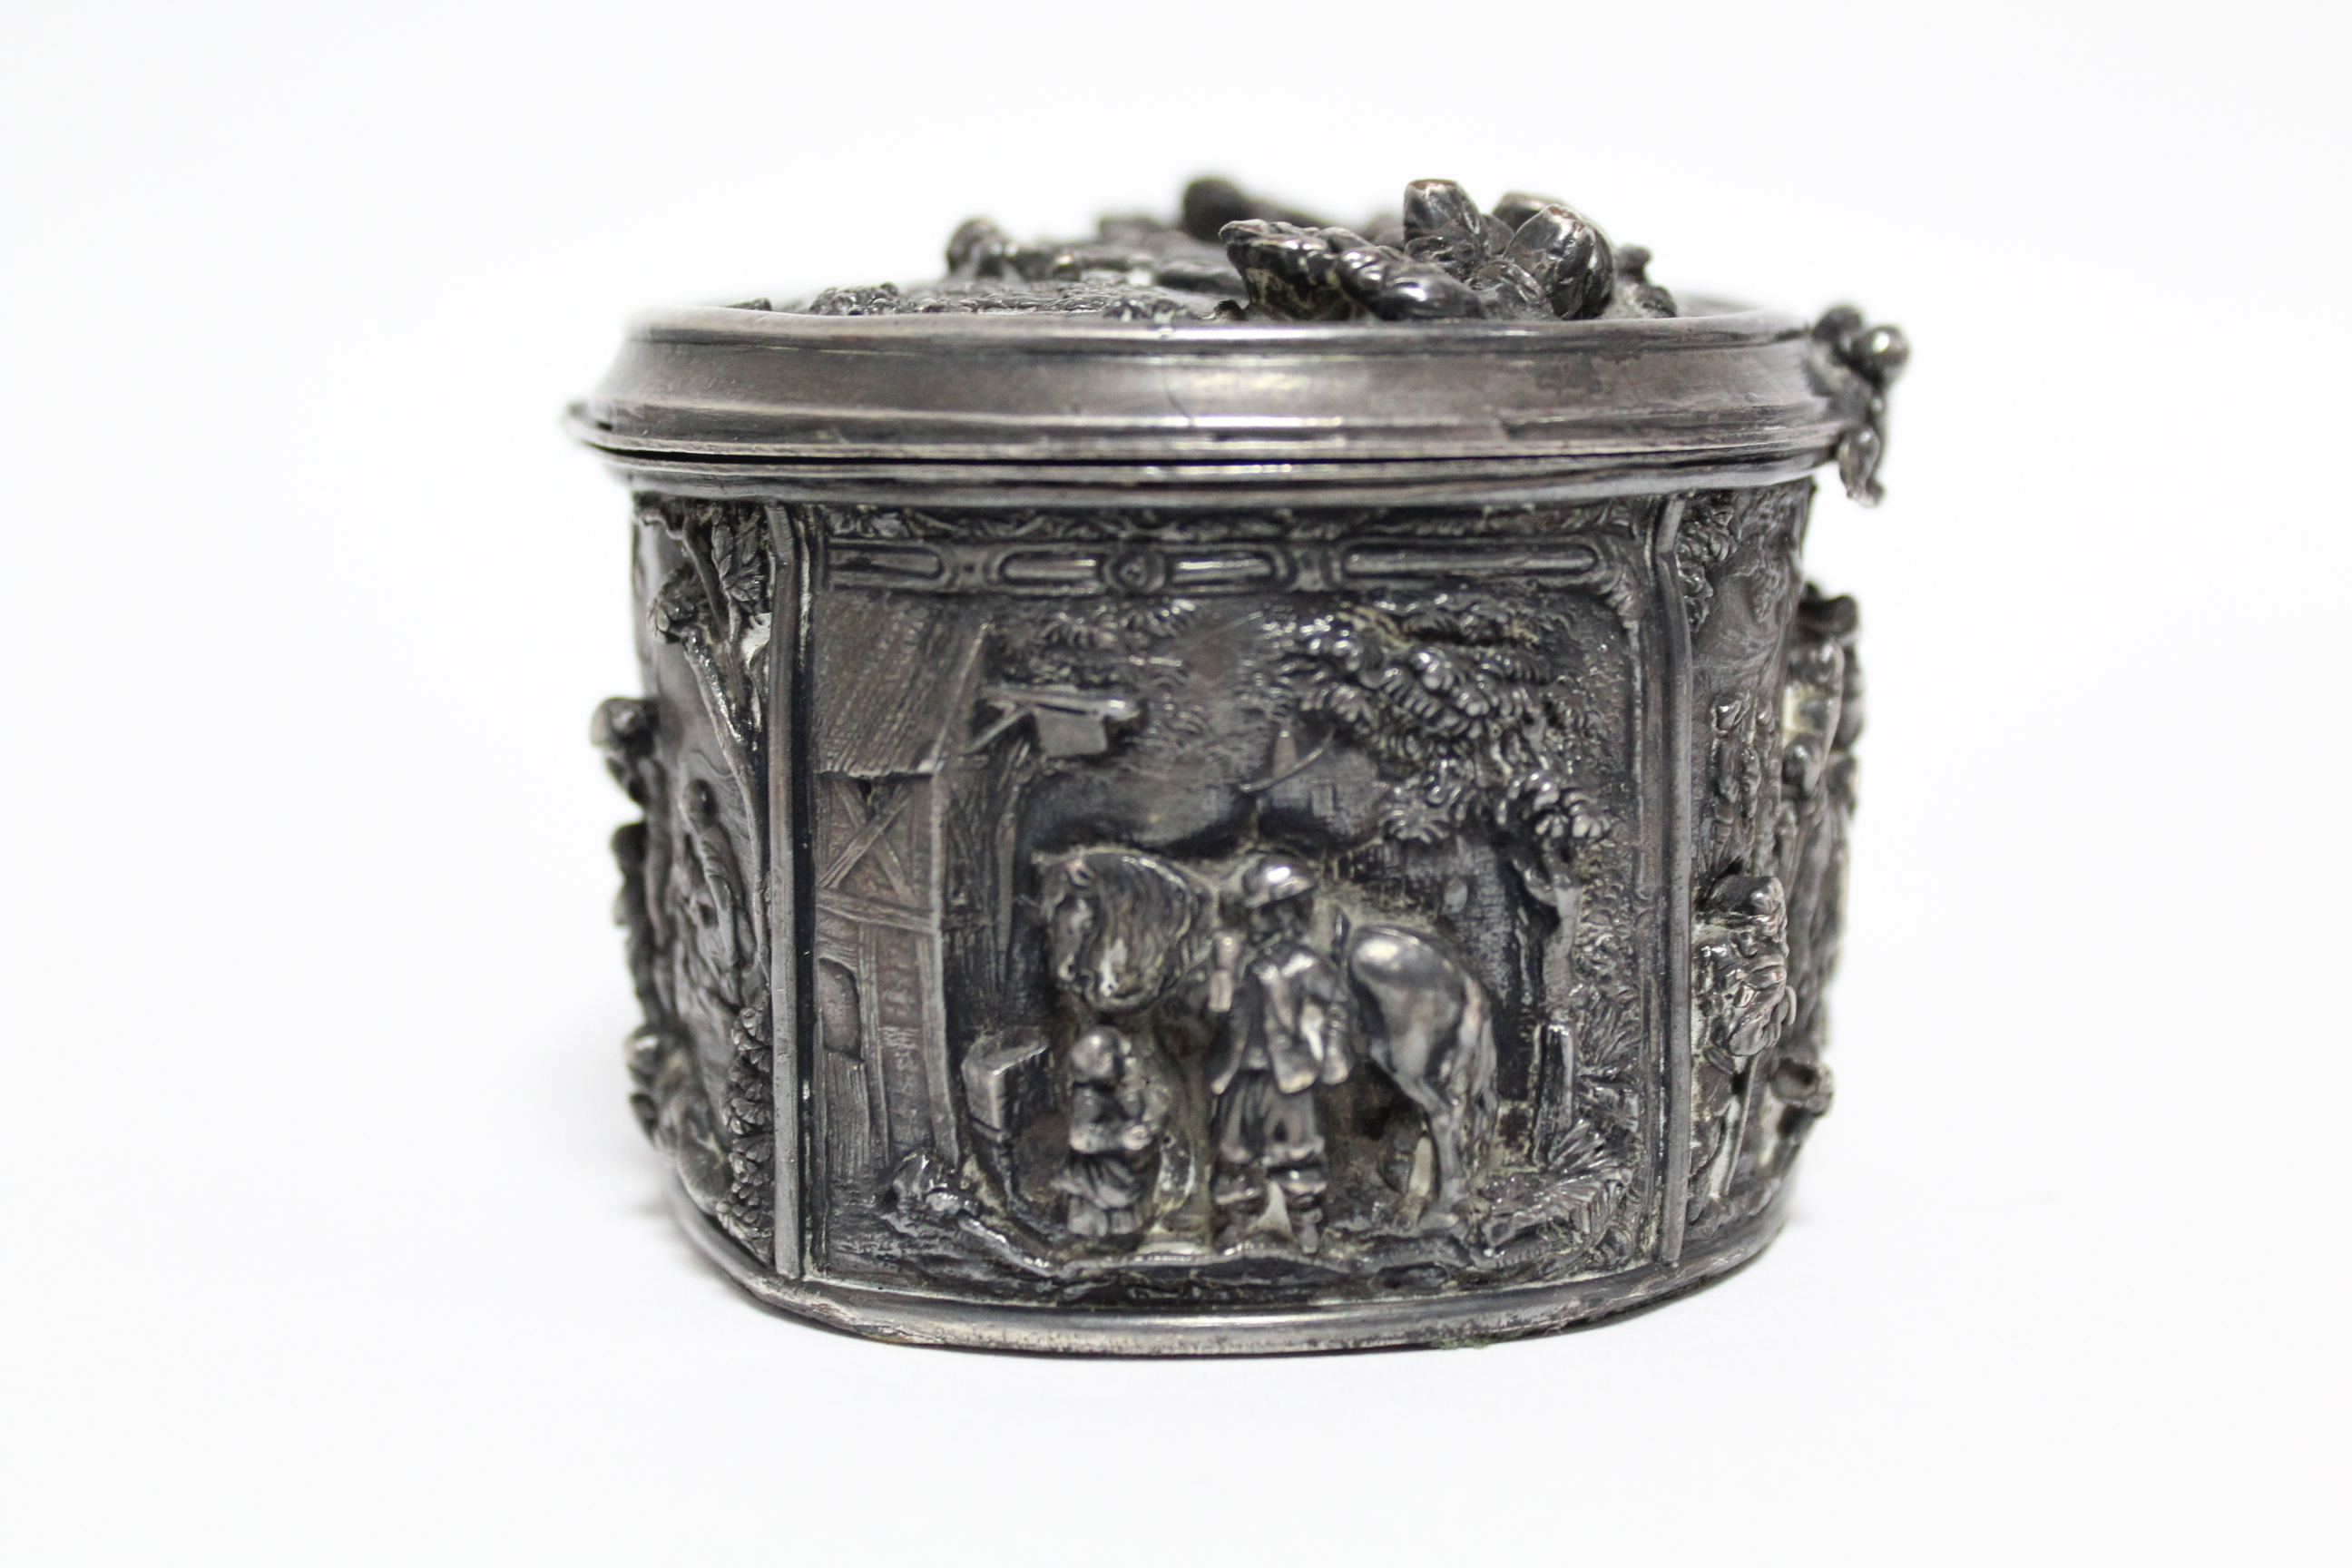 A continental white metal oval box, decorated in relief with scenes of huntsmen, figures & animals - Image 5 of 9